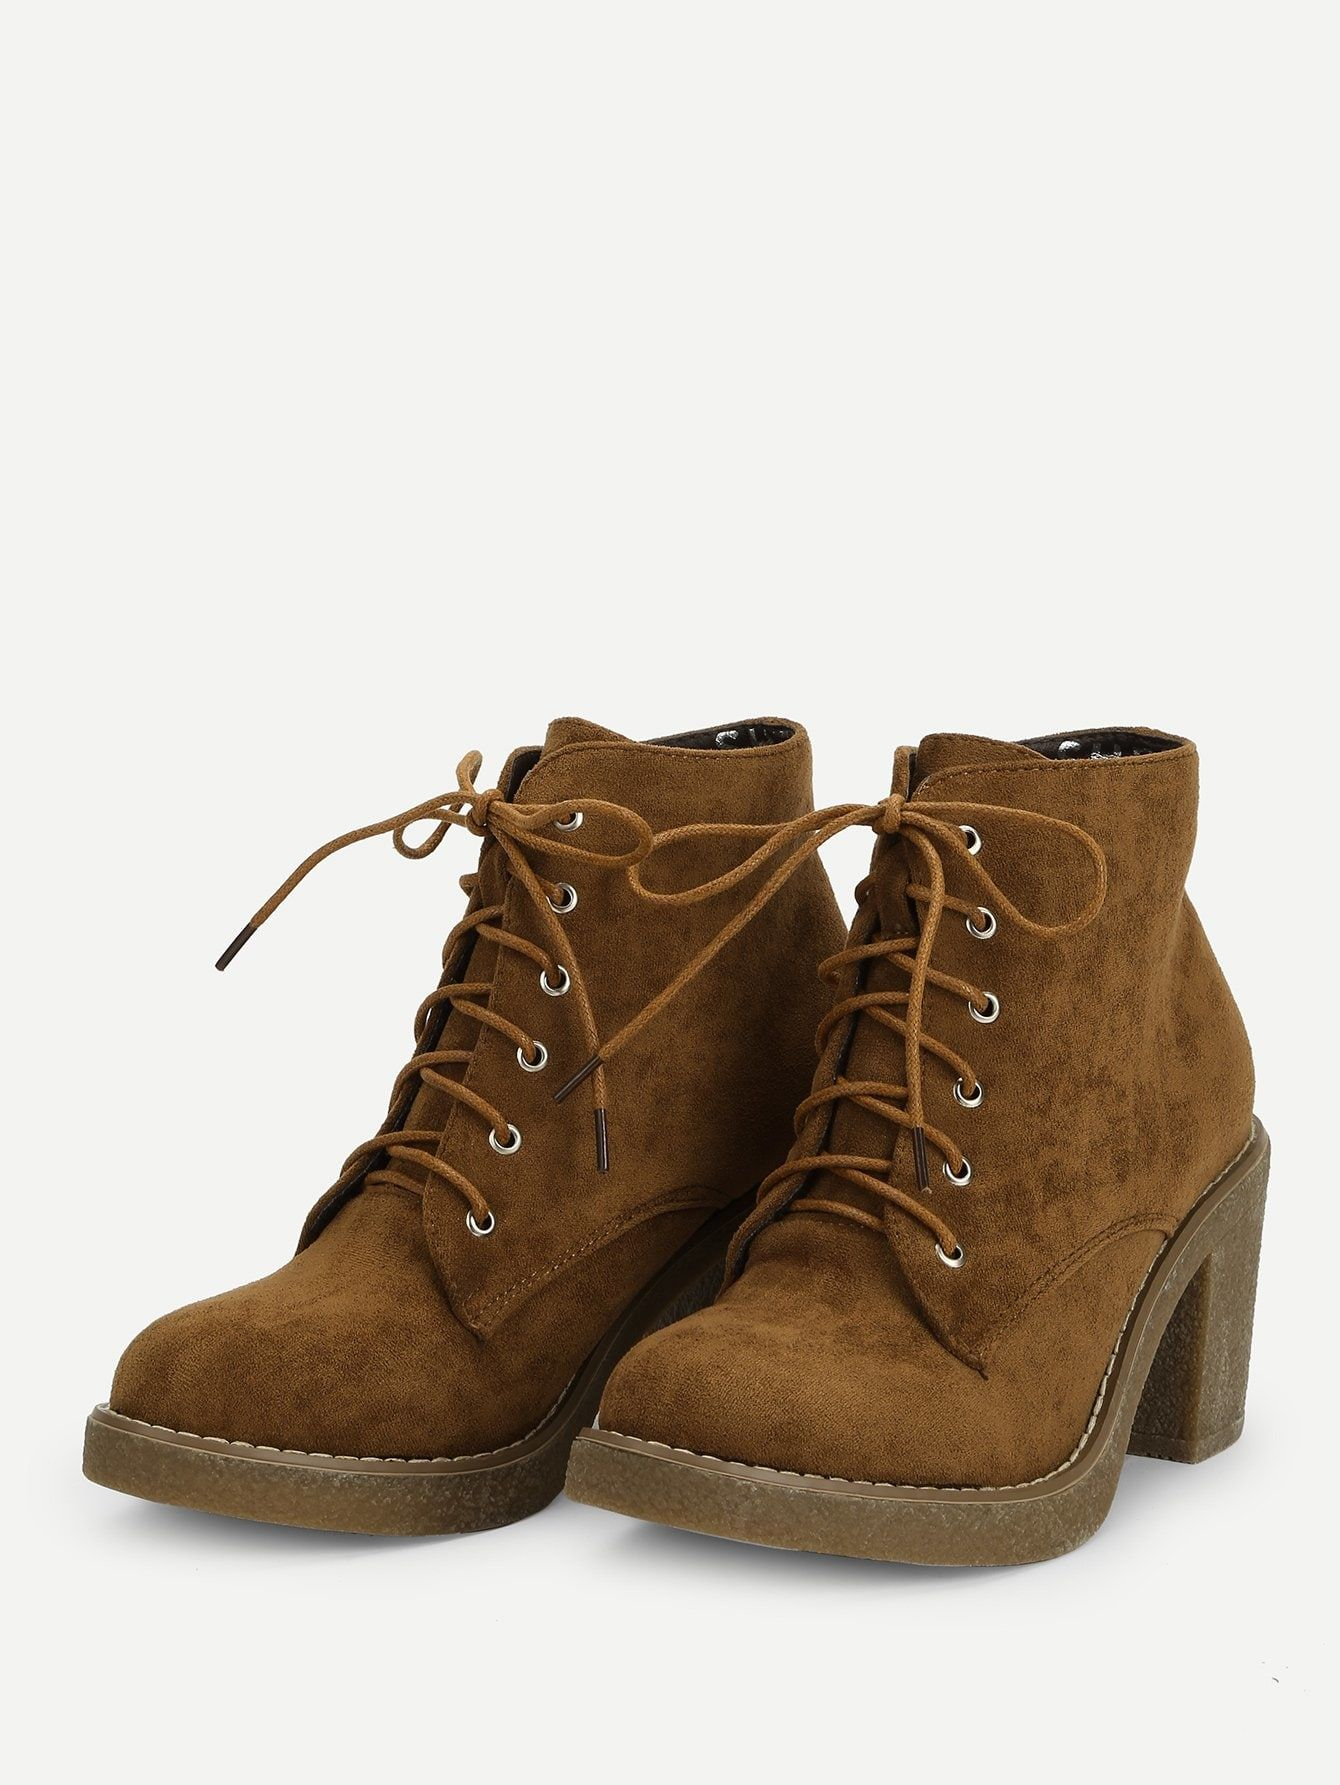 b61a771bf26 Casual Round Toe Ankle No zipper Camel High Heel Chunky Lace-up Block Heeled  Ankle Boots